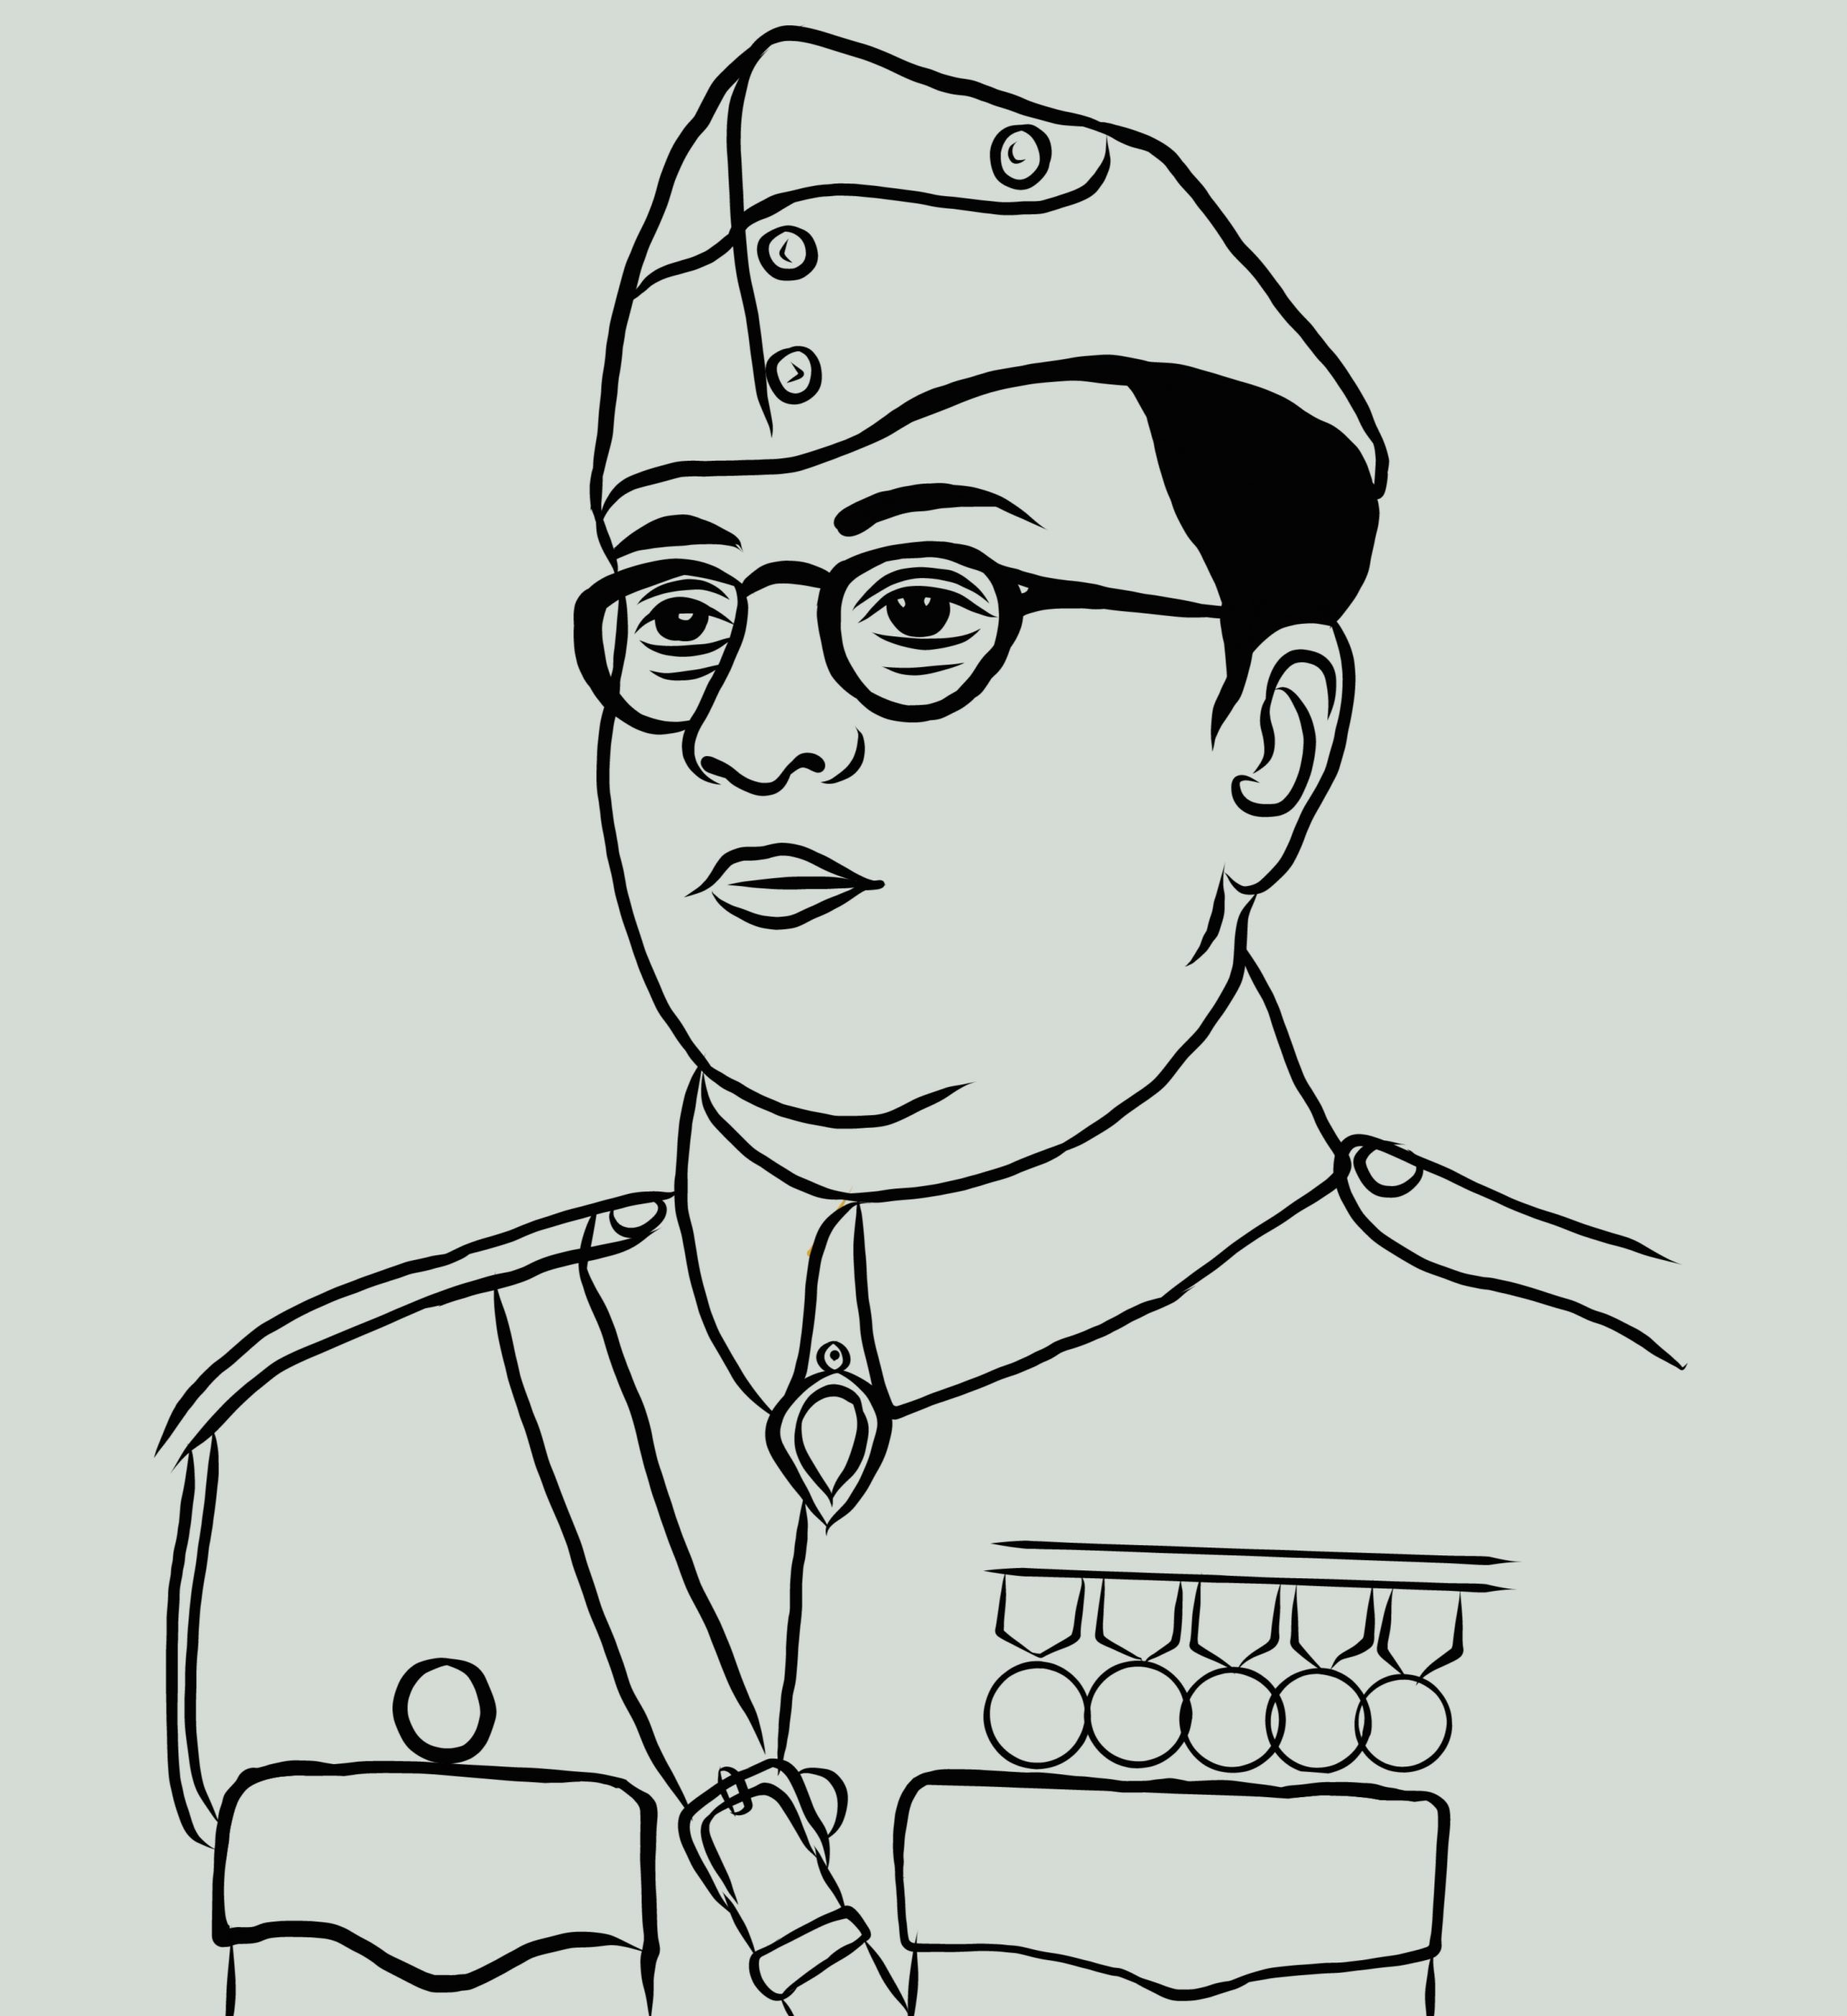 Illustration of Nataji Subash Chandra Bose